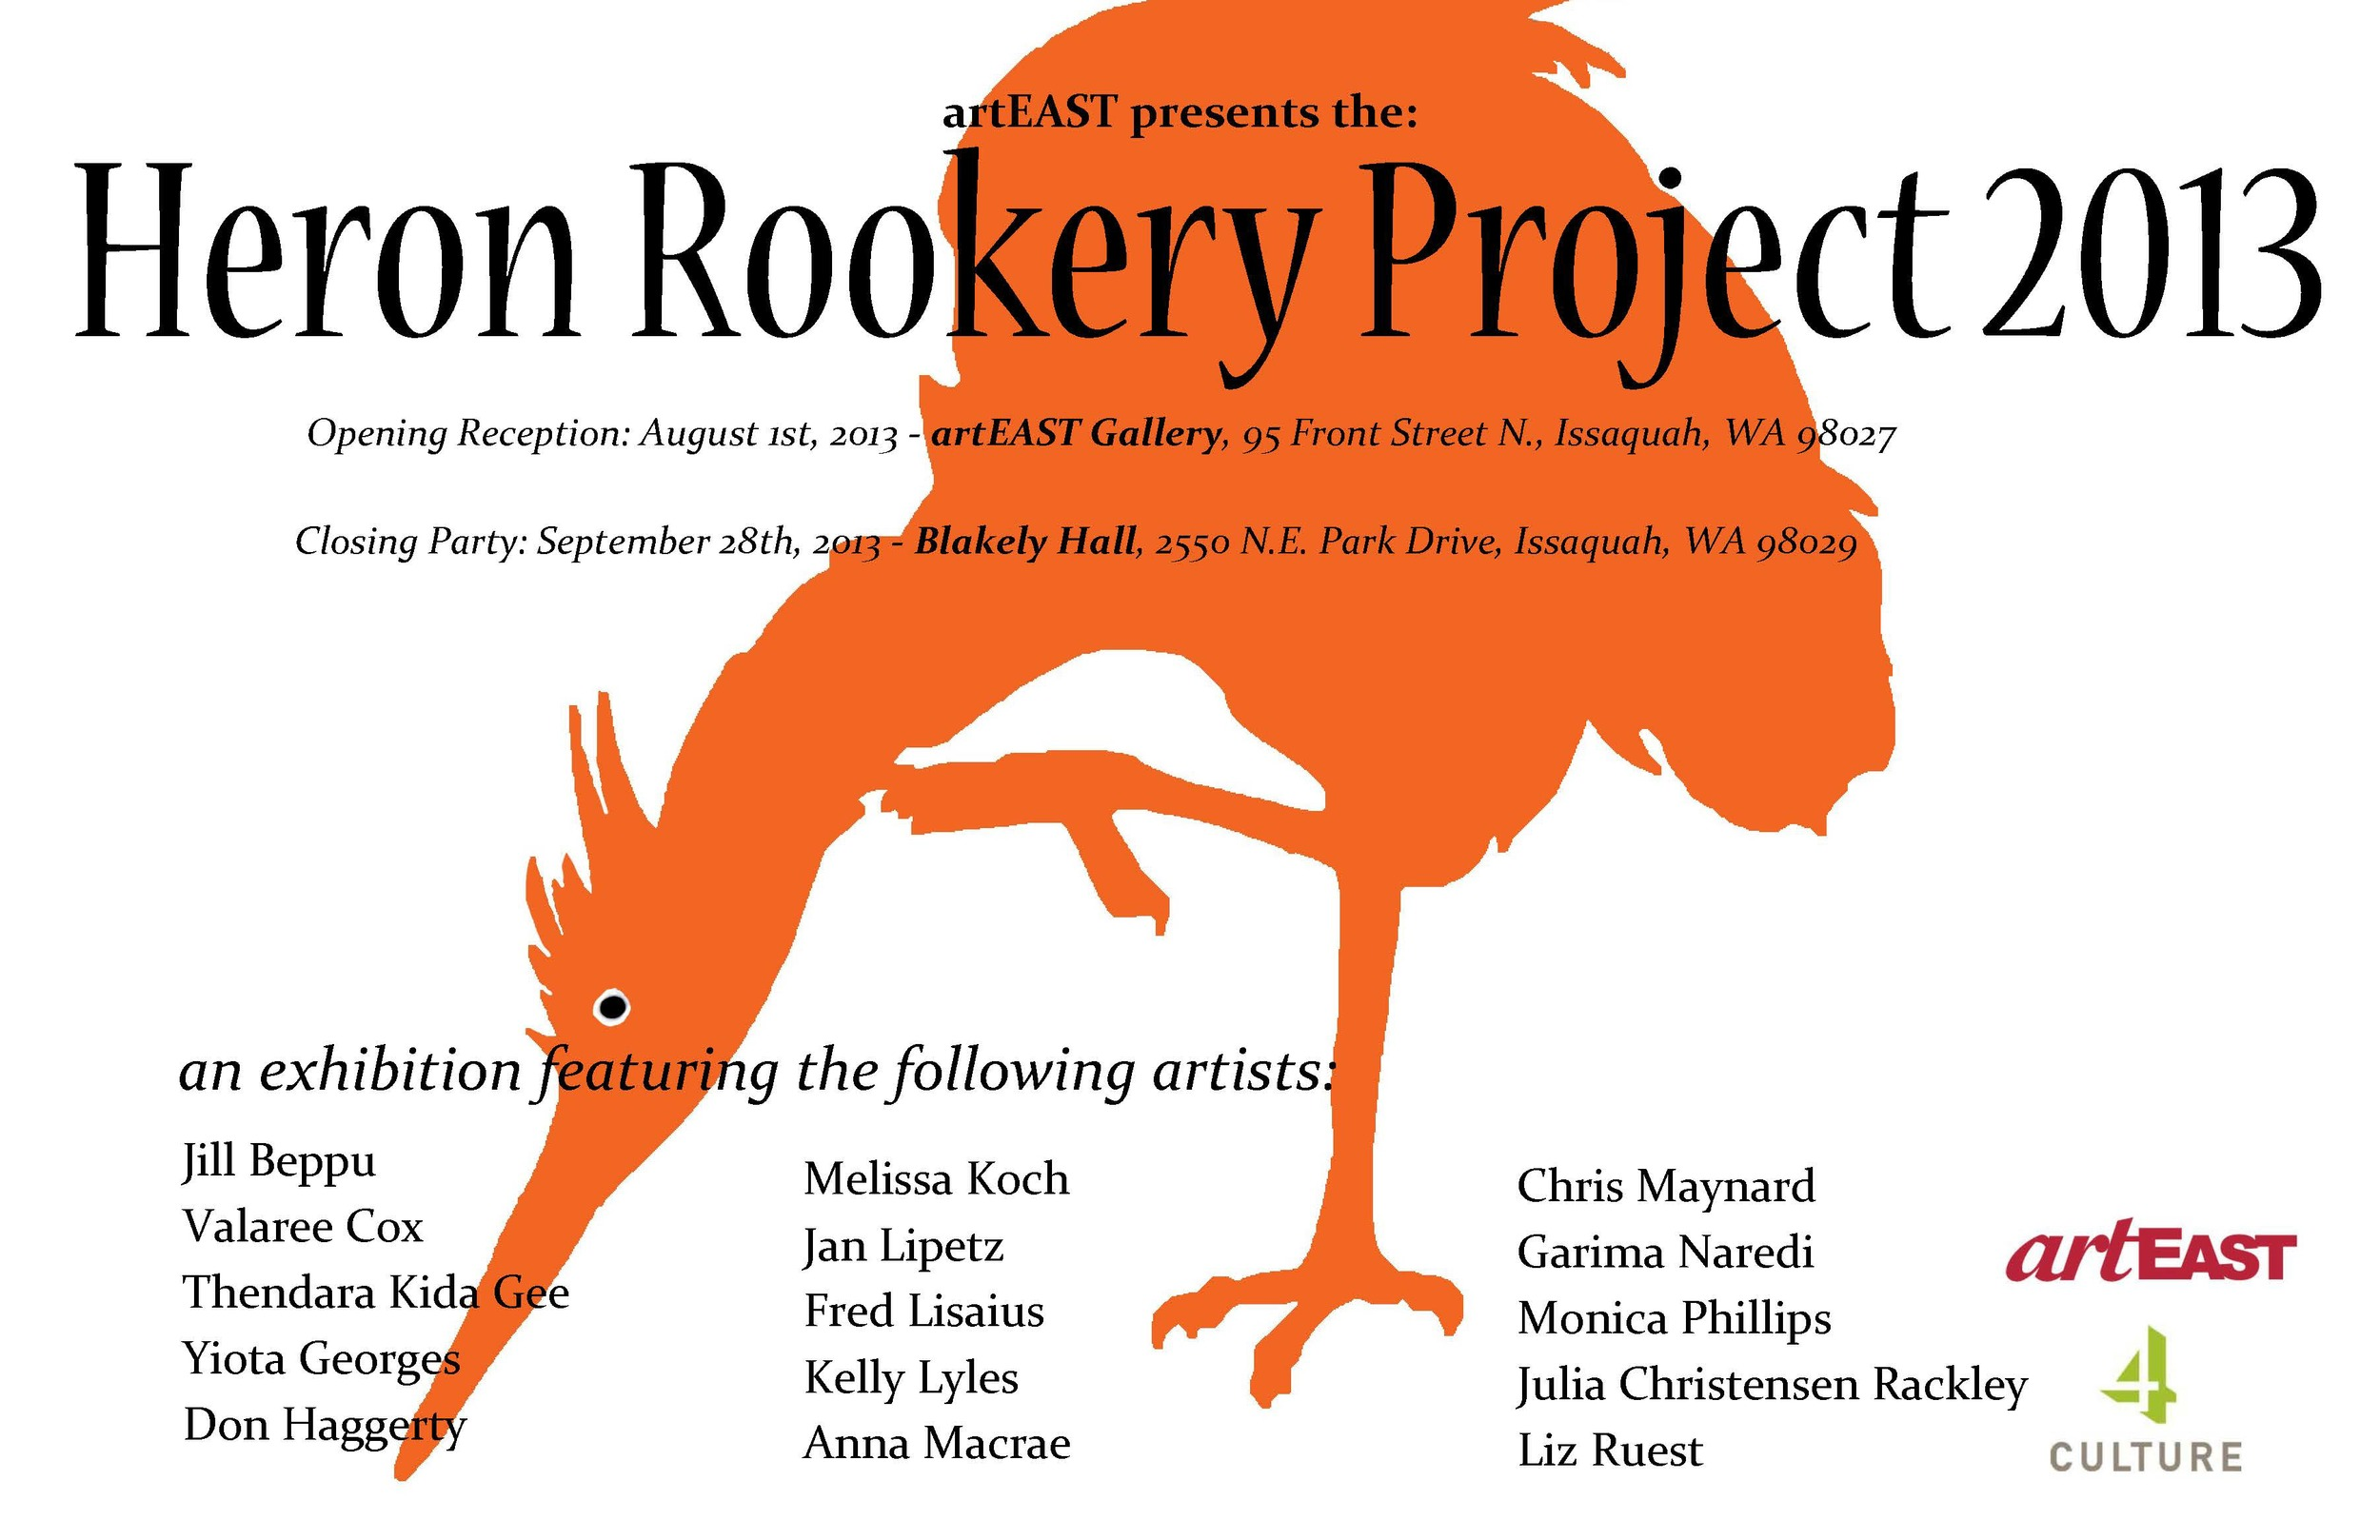 rookeryproject2013.jpg